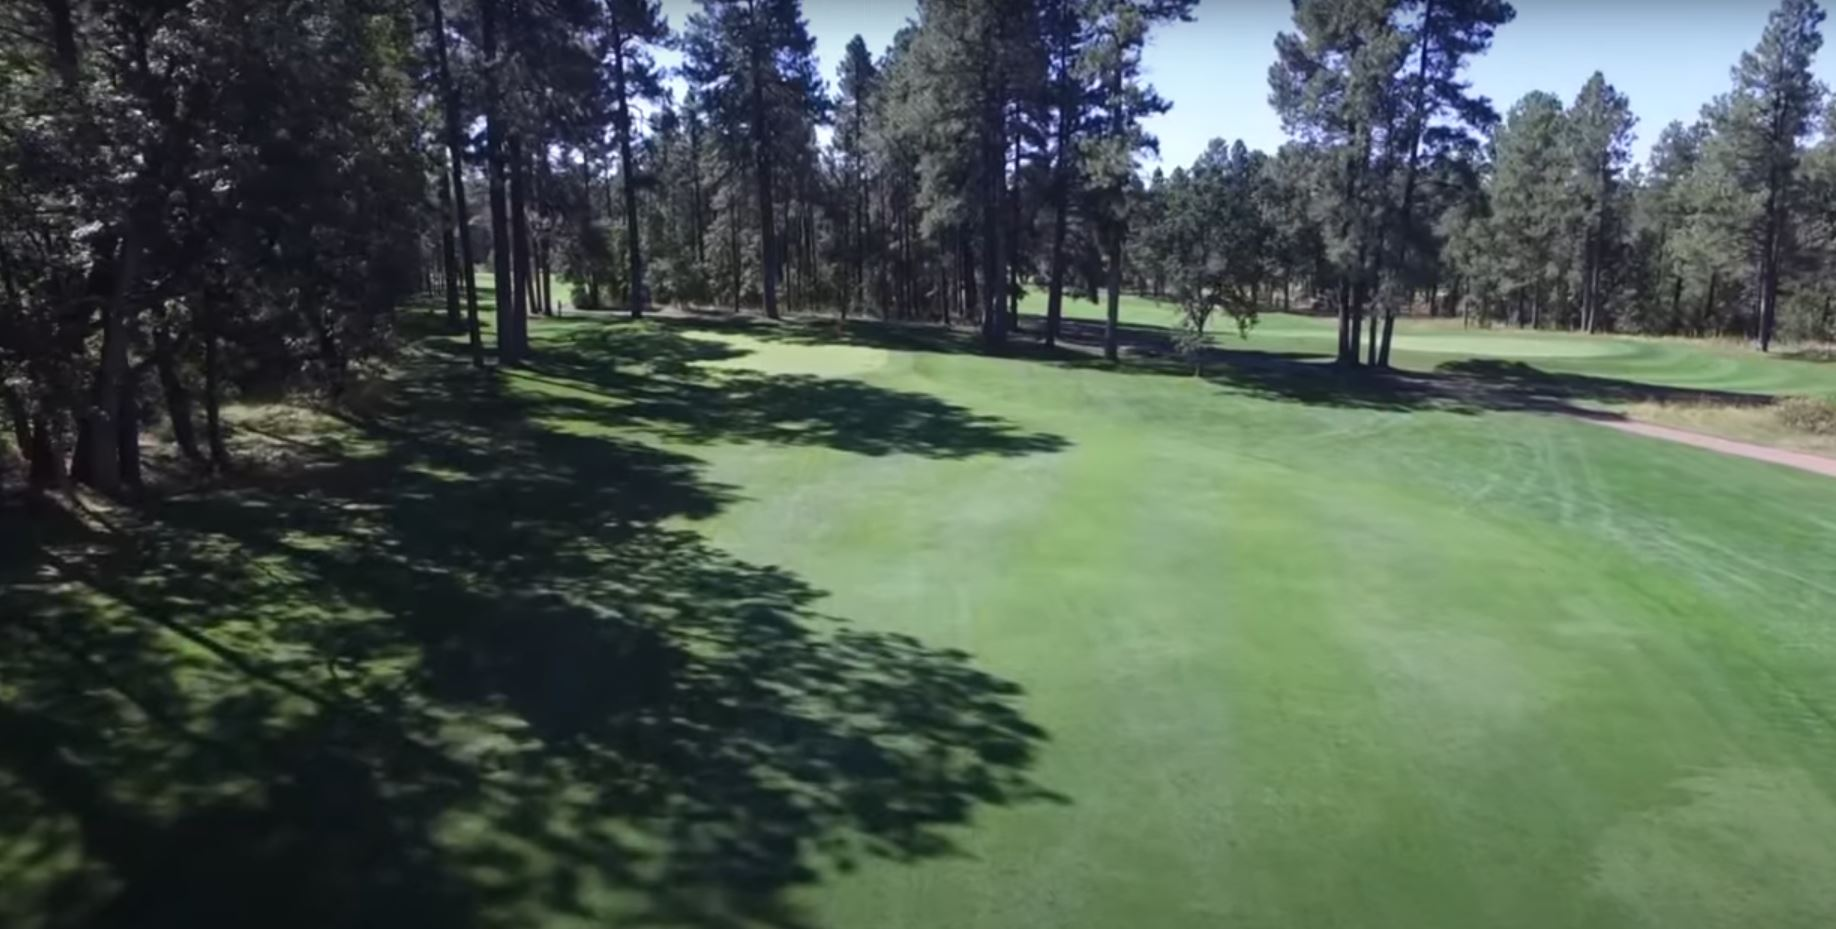 a green golf course with Pine trees on the sides